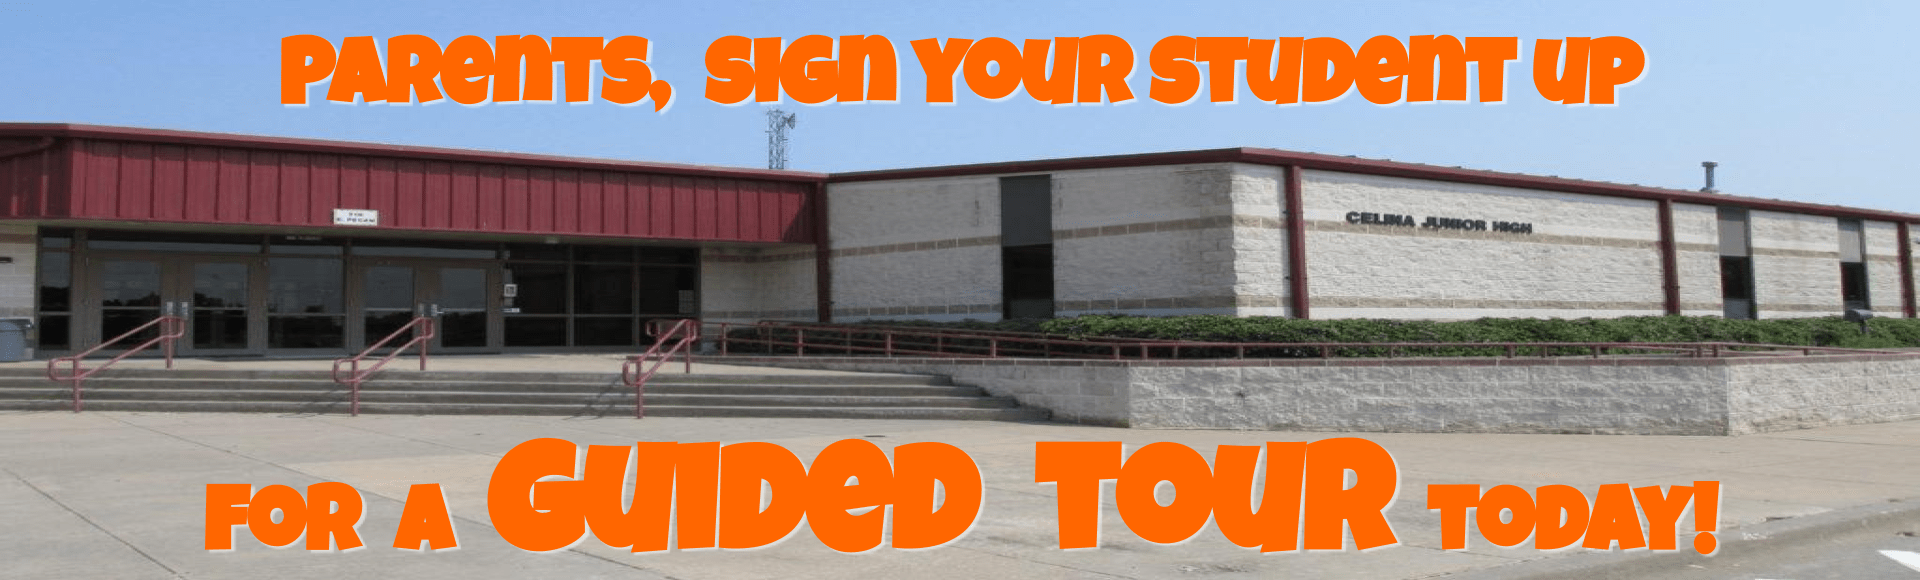 Sign up for your student's tour!